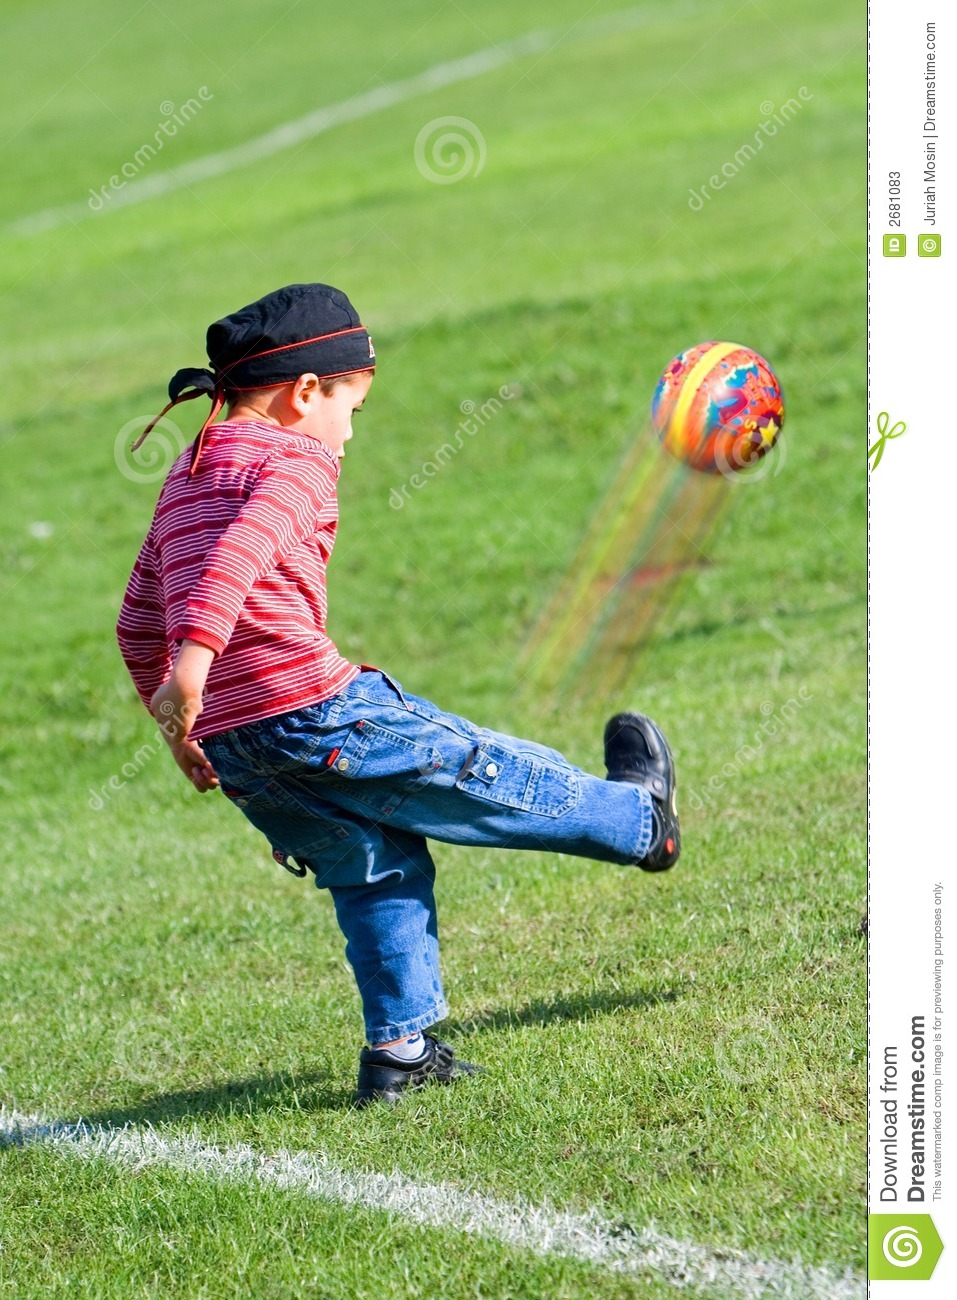 young boy kicks rubber ball stock image image of conditioning